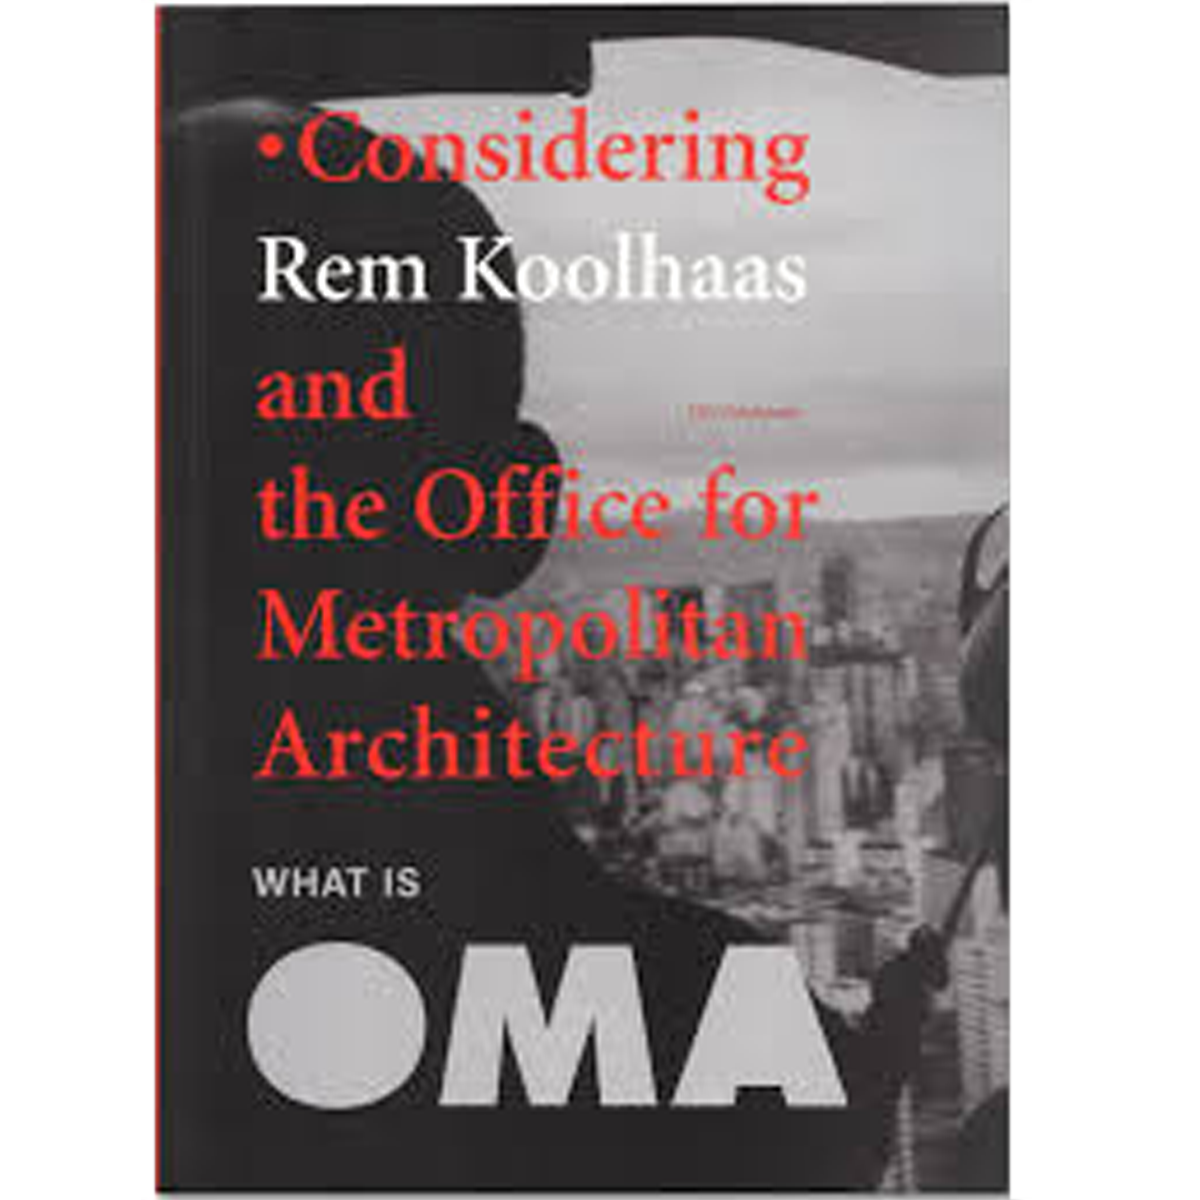 What is OMA? Considering Rem Koolhaas and the OMA